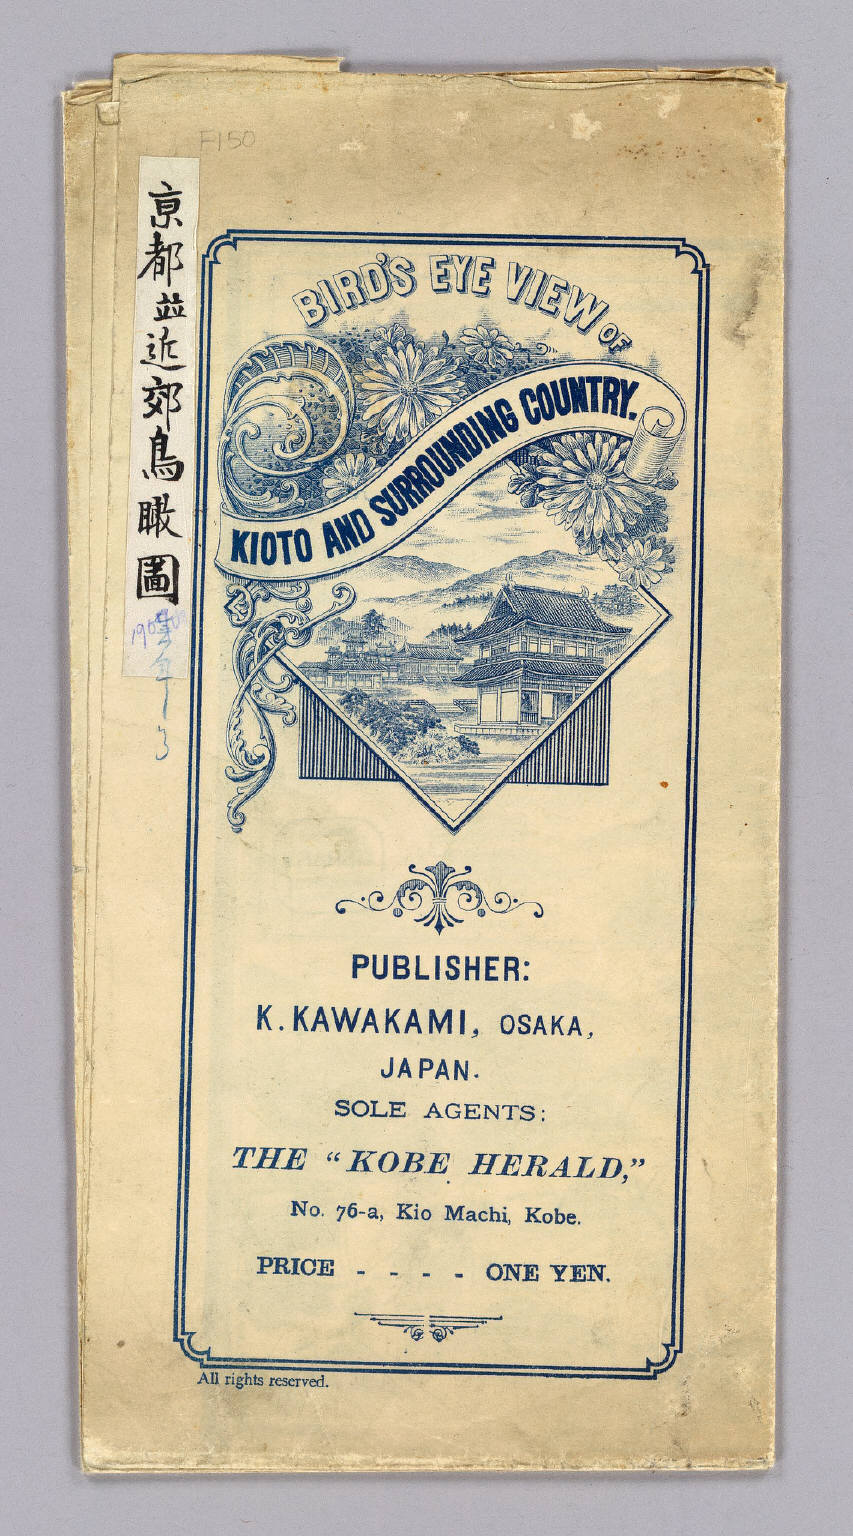 Cover: Bird's eye view of Kioto and surrounding country.